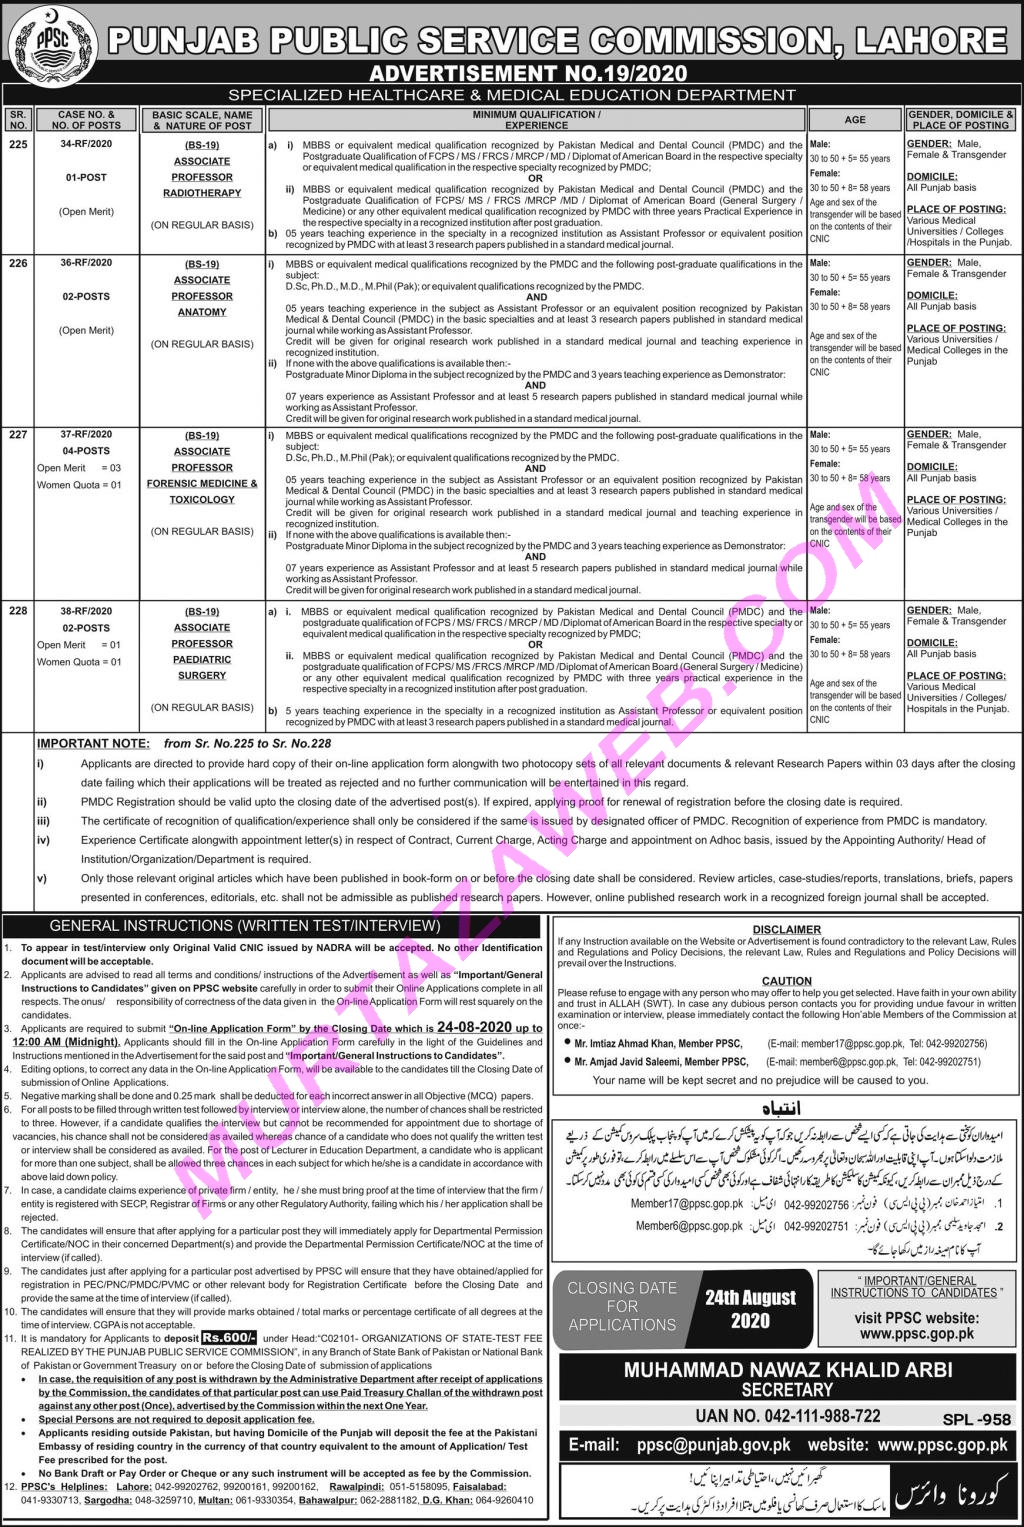 PPSC Jobs 2020 Specialized Healthcare and Medical Education Department MBBS